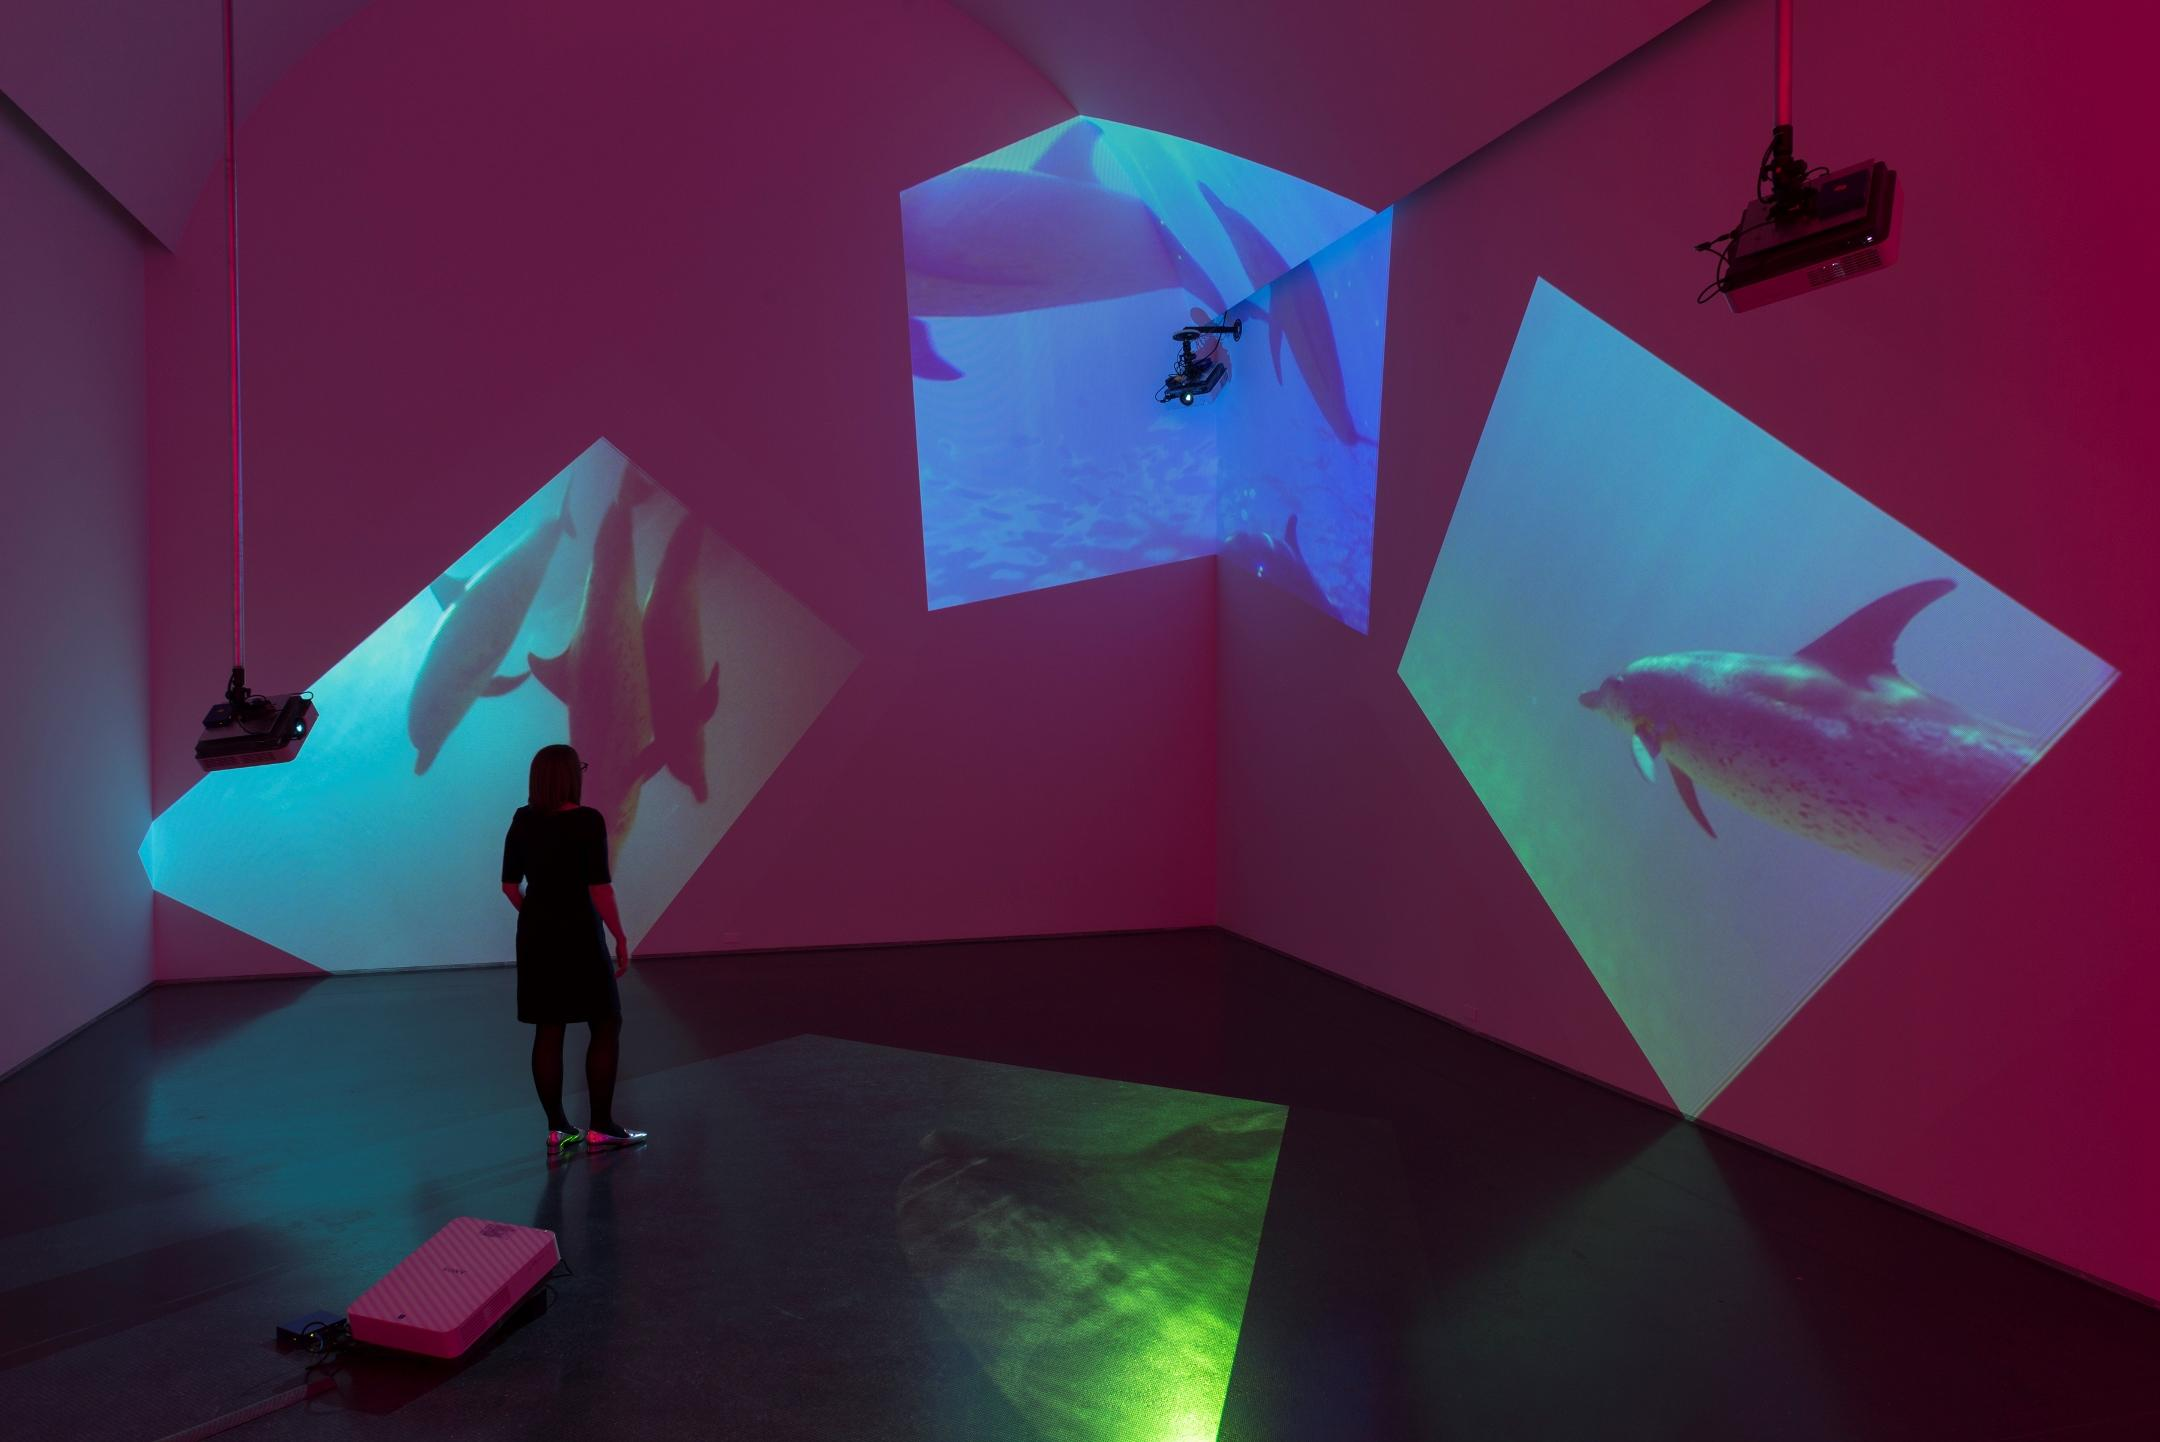 Four trapezoidal projections of a pod of dolphins in varying shades of blue and green are projected onto three red walls and the dark floor of a large gallery. Three of the cameras projecting the videos are visible, suspended from the ceiling.